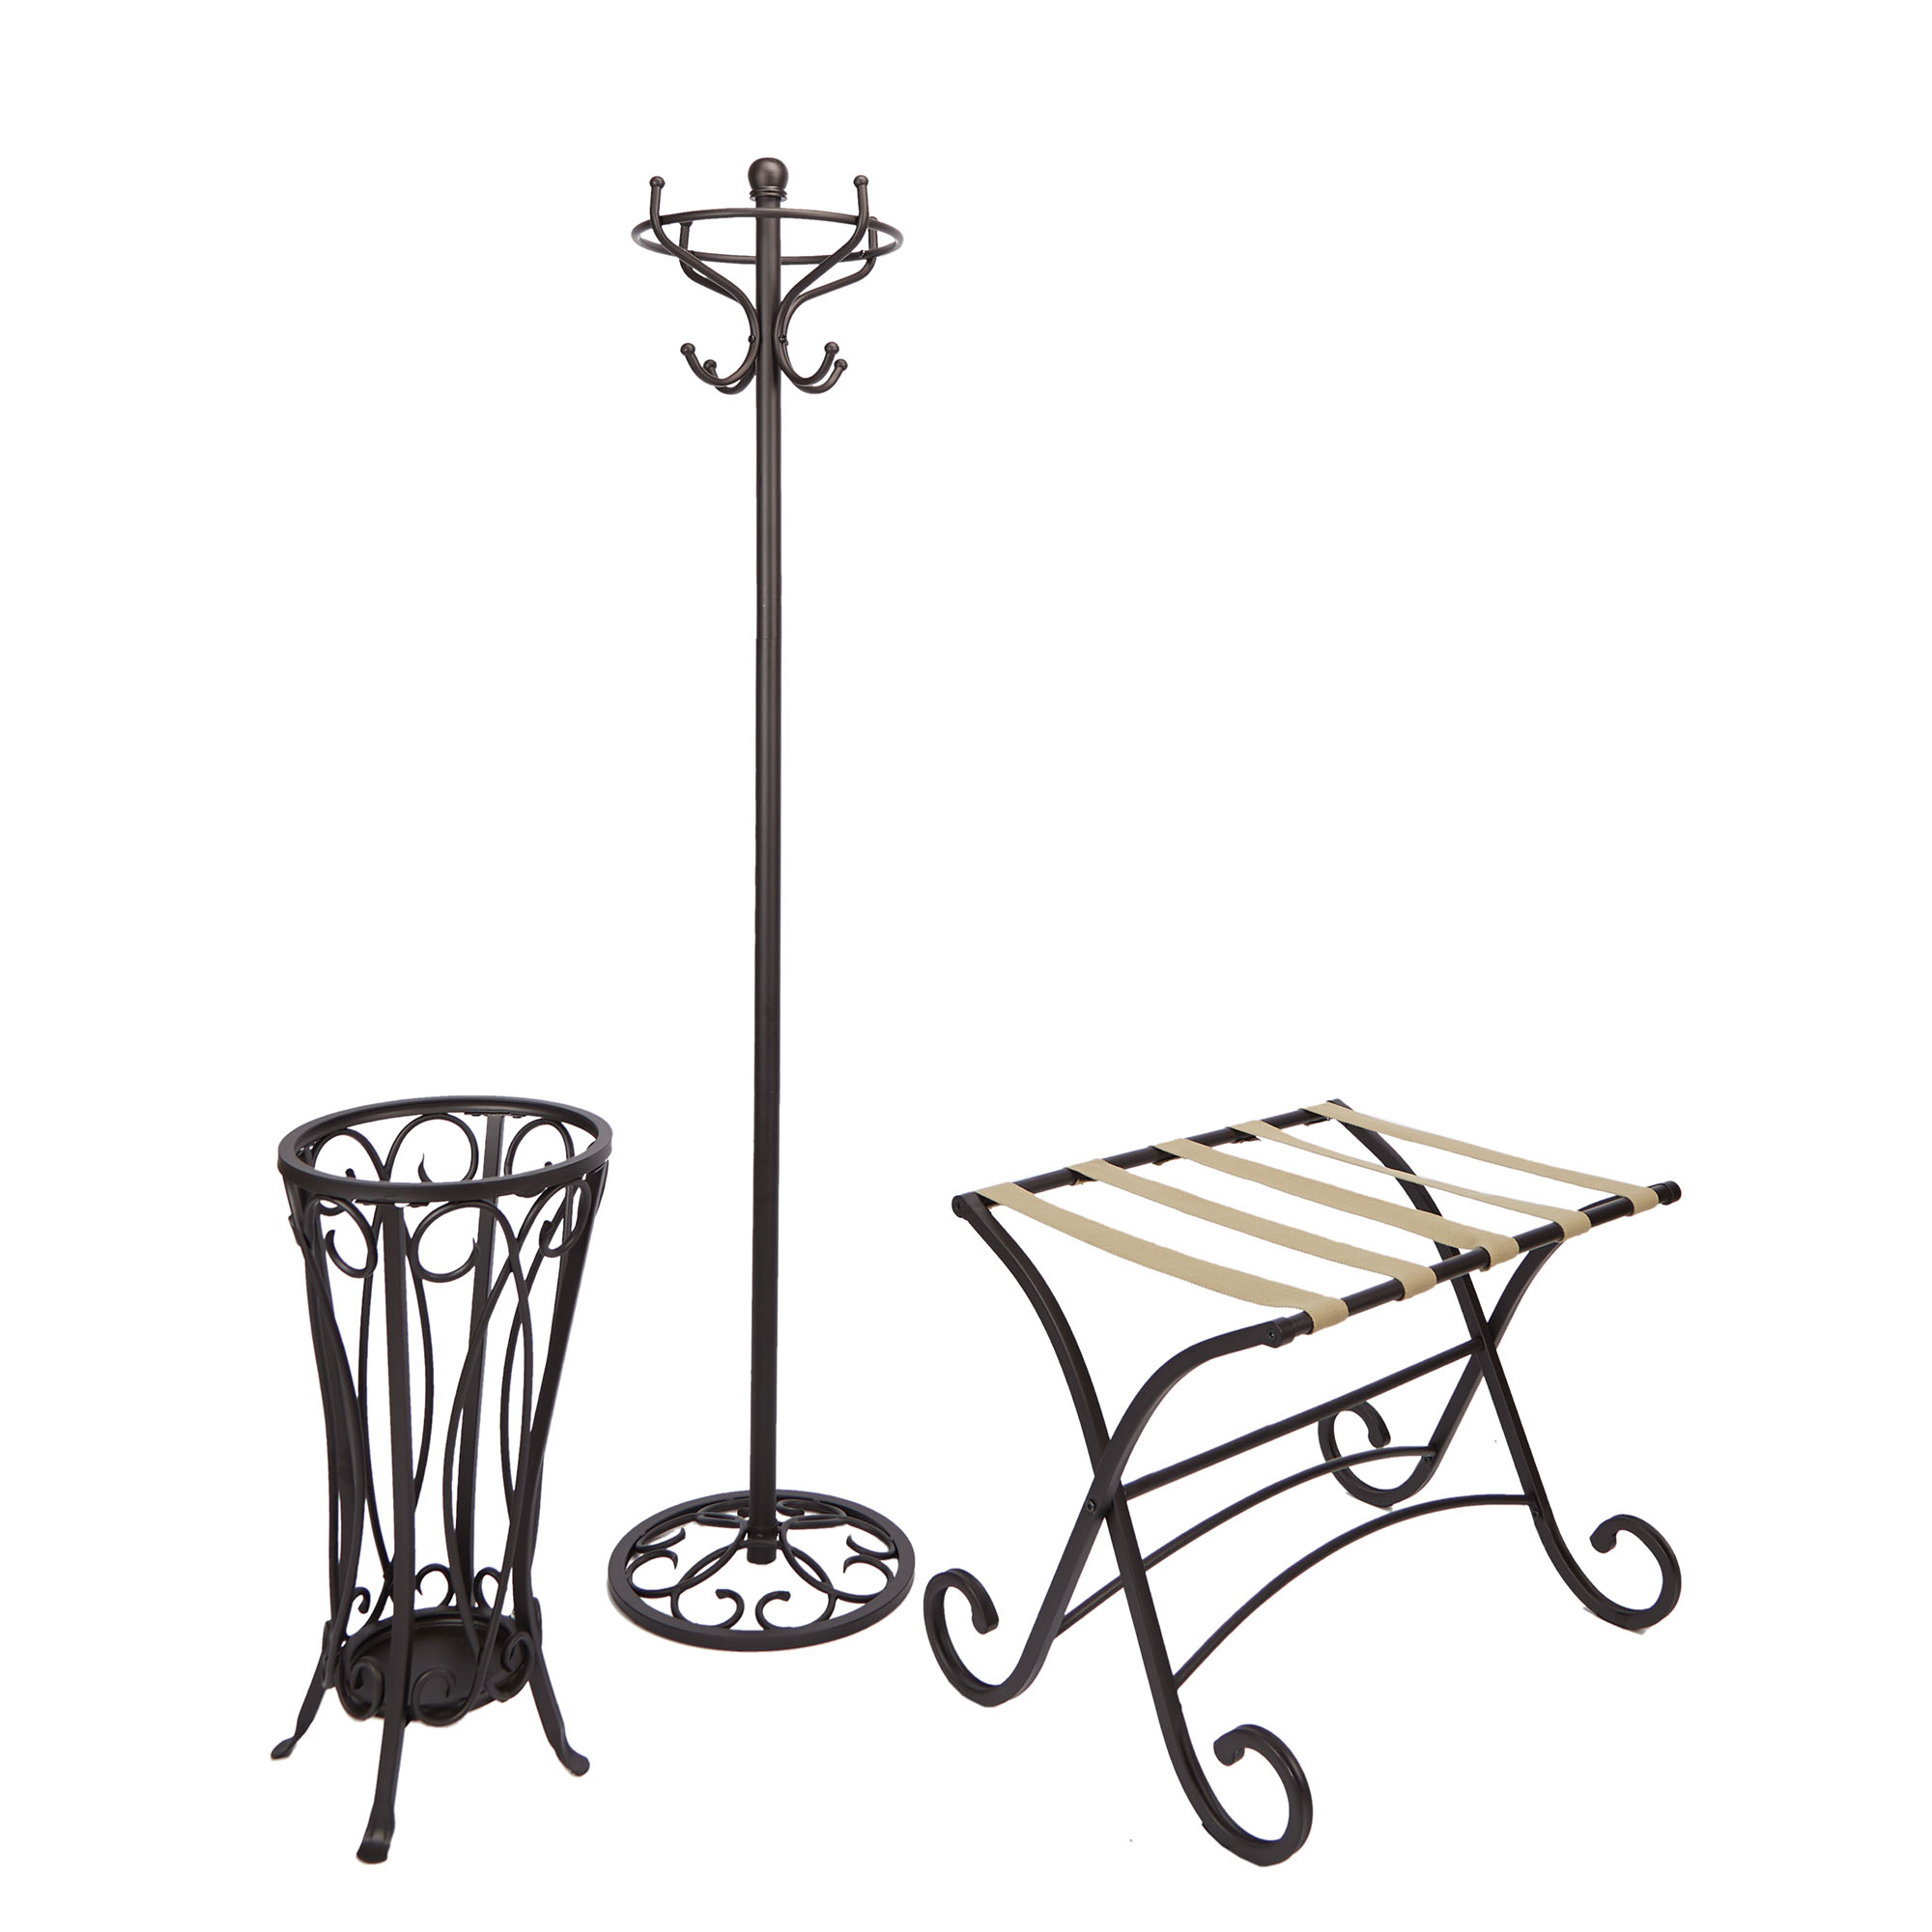 3-Piece Coat Rack, Luggage Rack and Umbrella Stand, Oil-Rubbed Bronze